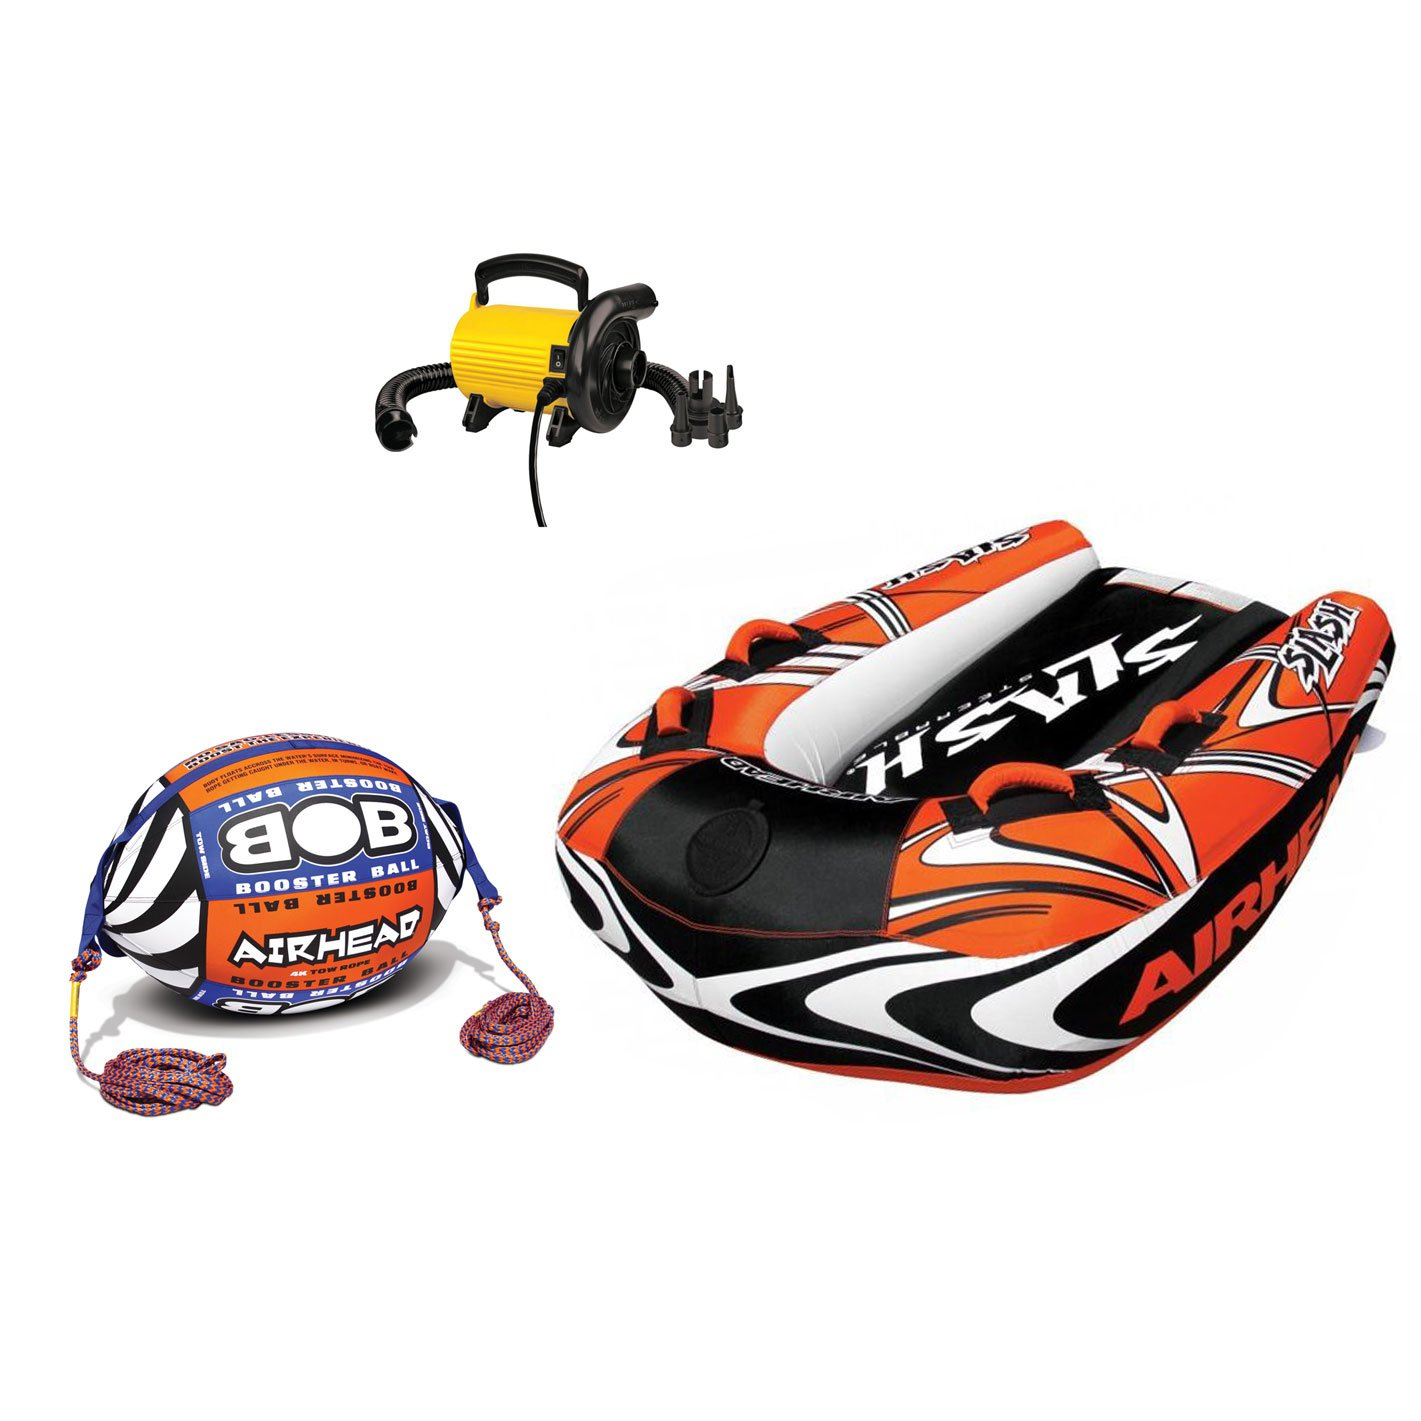 Airhead Inflatable Boat Towable Tube w/Bob Tow Rope and 110V Electric Pump